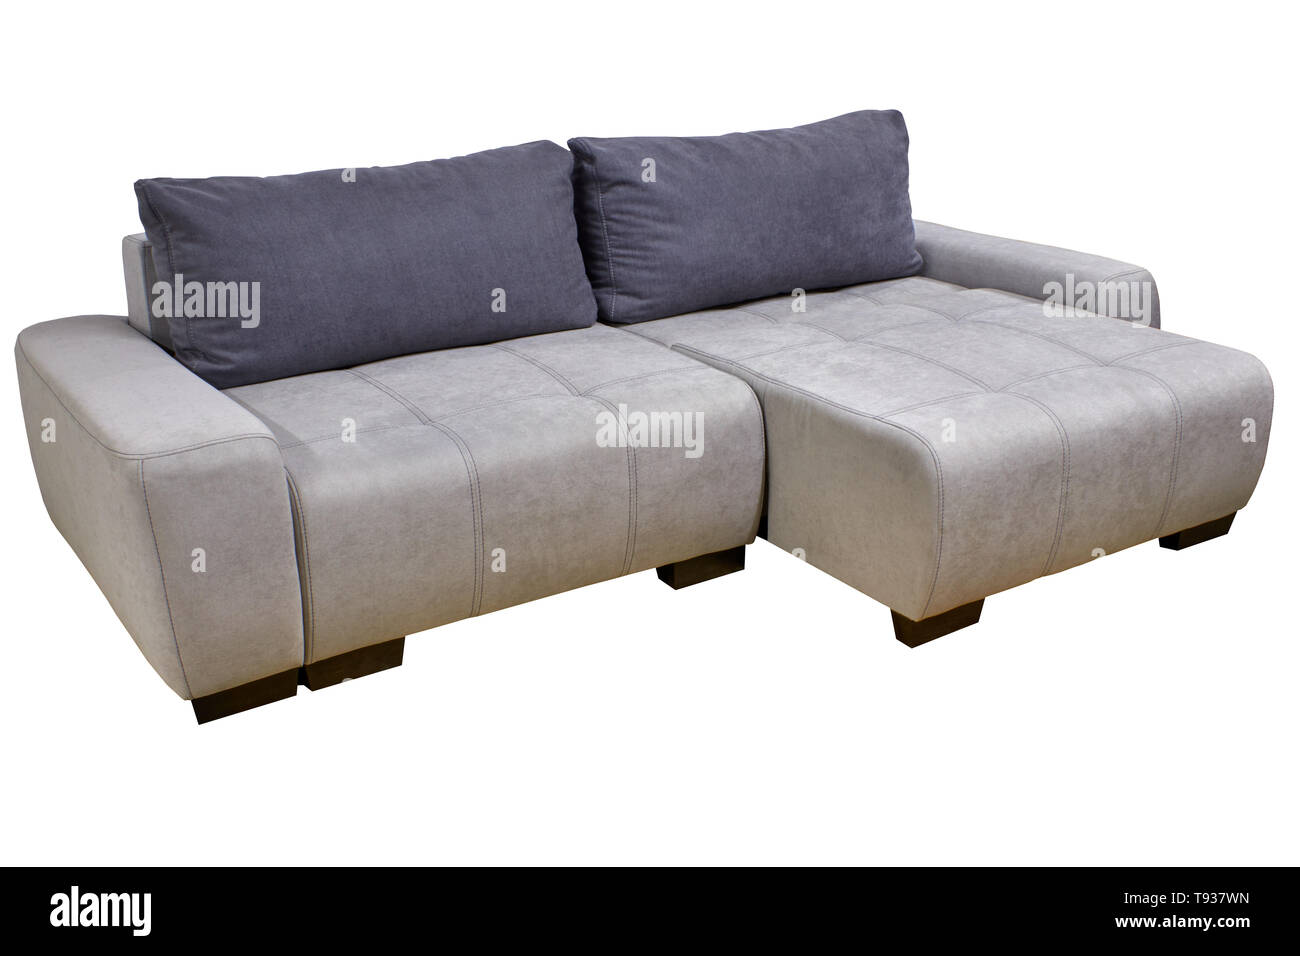 modern stylish corner sofa in white fabric with gray pillows - Stock Image